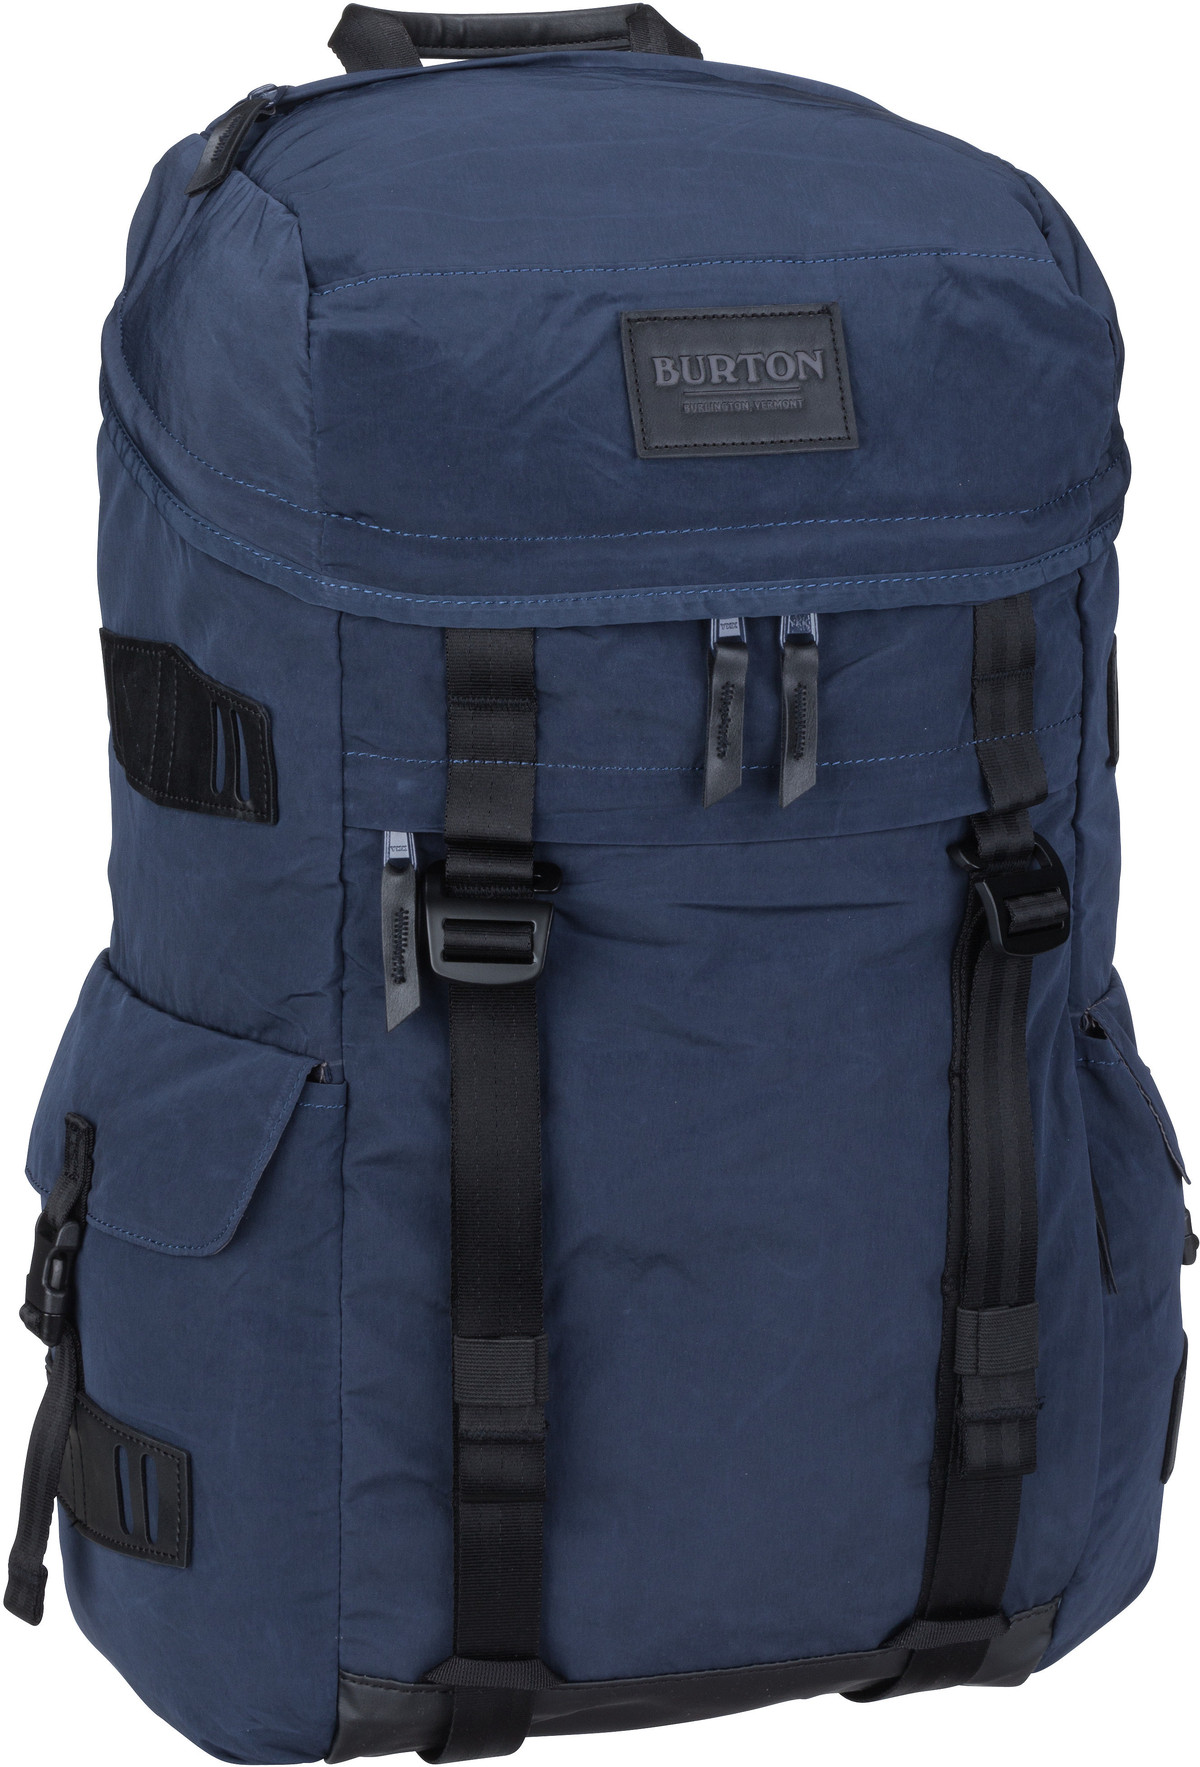 Laptoprucksack Annex 28L Backpack Premium Dress Blue Air Wash (28 Liter)